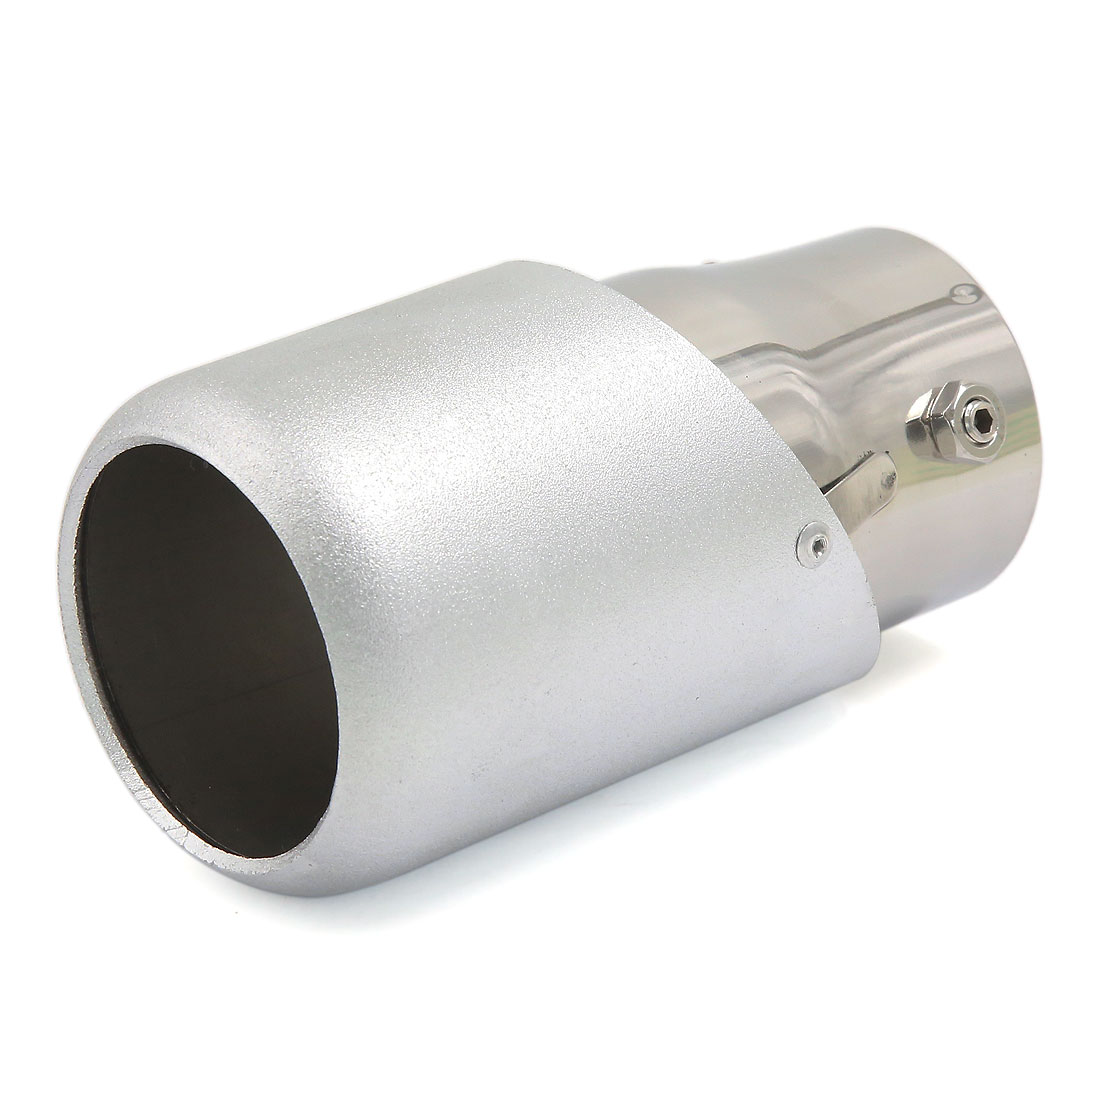 Silver Tone Dull Polish 65mm Inlet Straight Car Exhaust Pipe Muffler Tip For Audi Q5